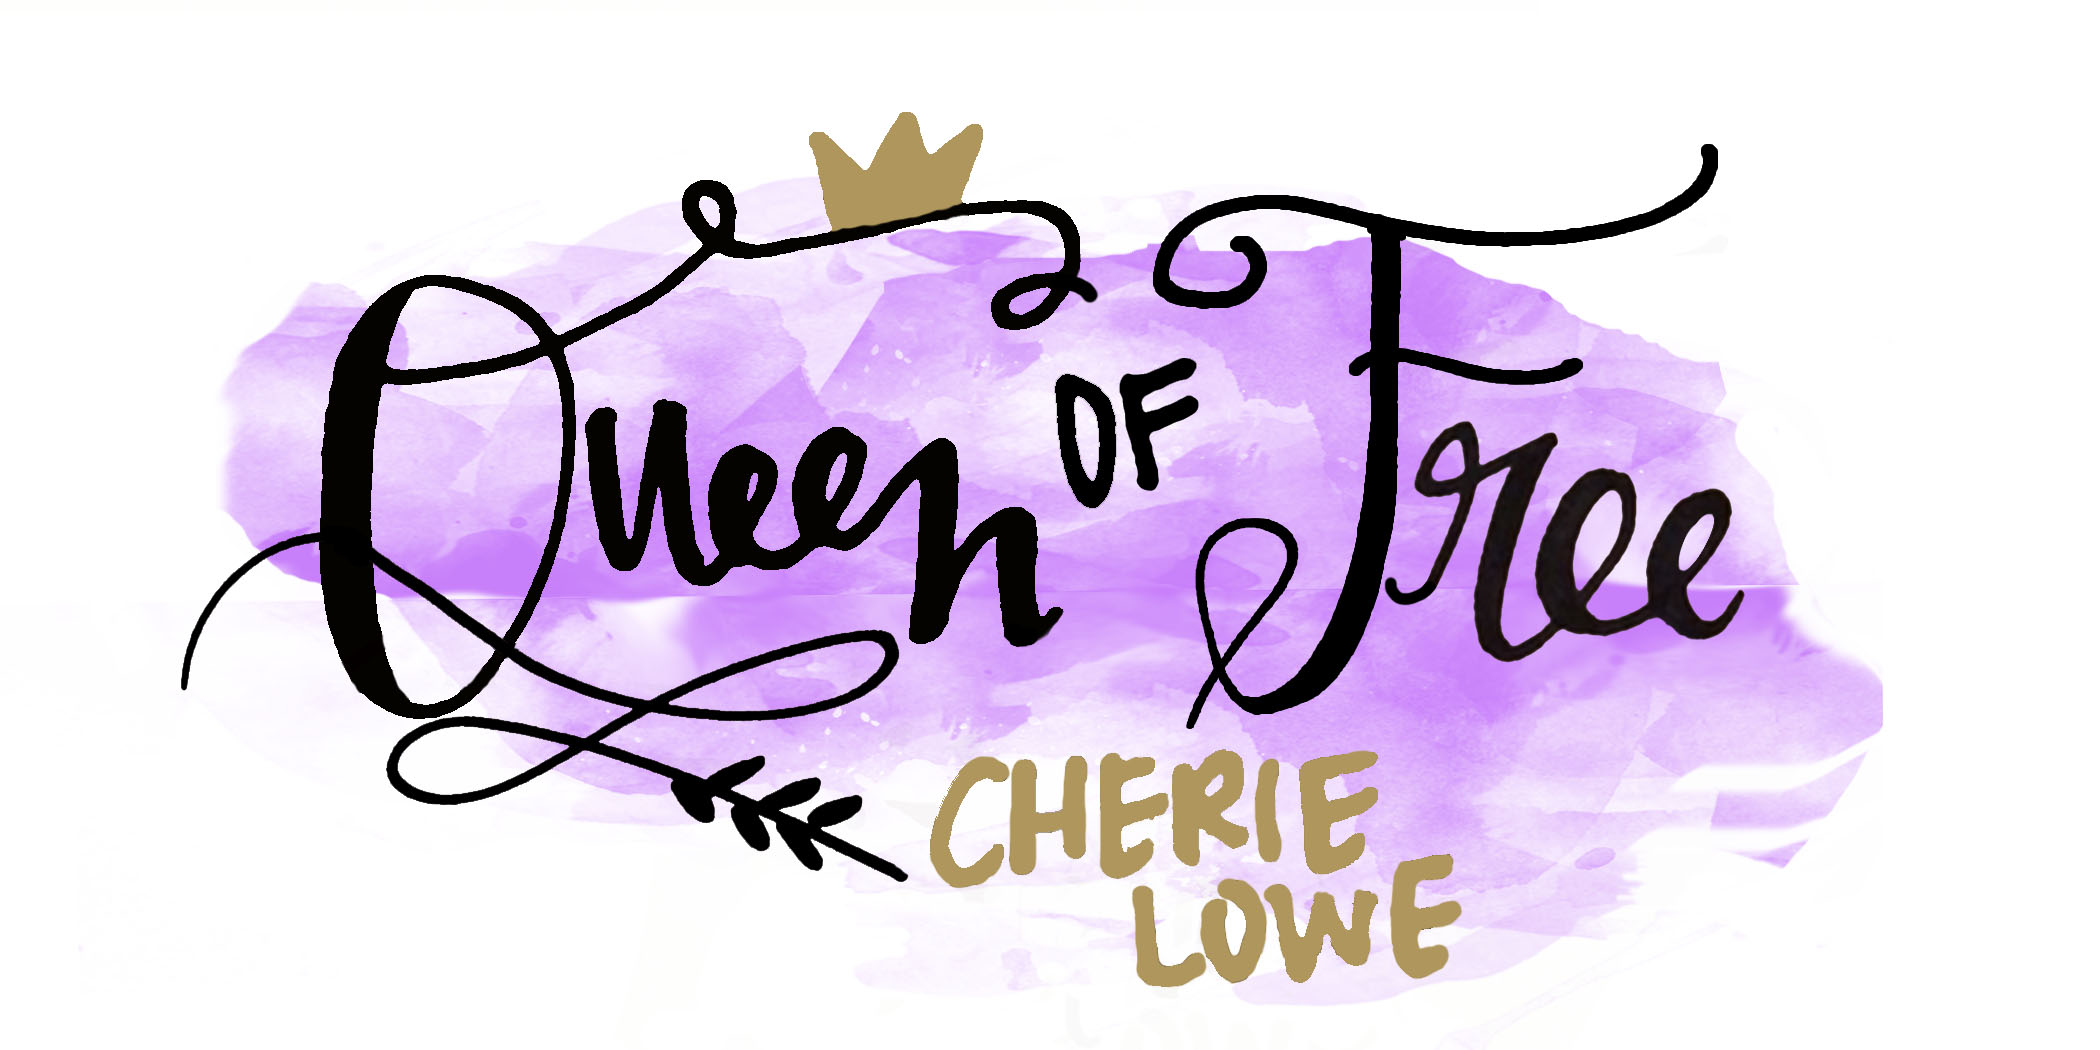 check out cherie lowe the queen of free for the best money saving and debt